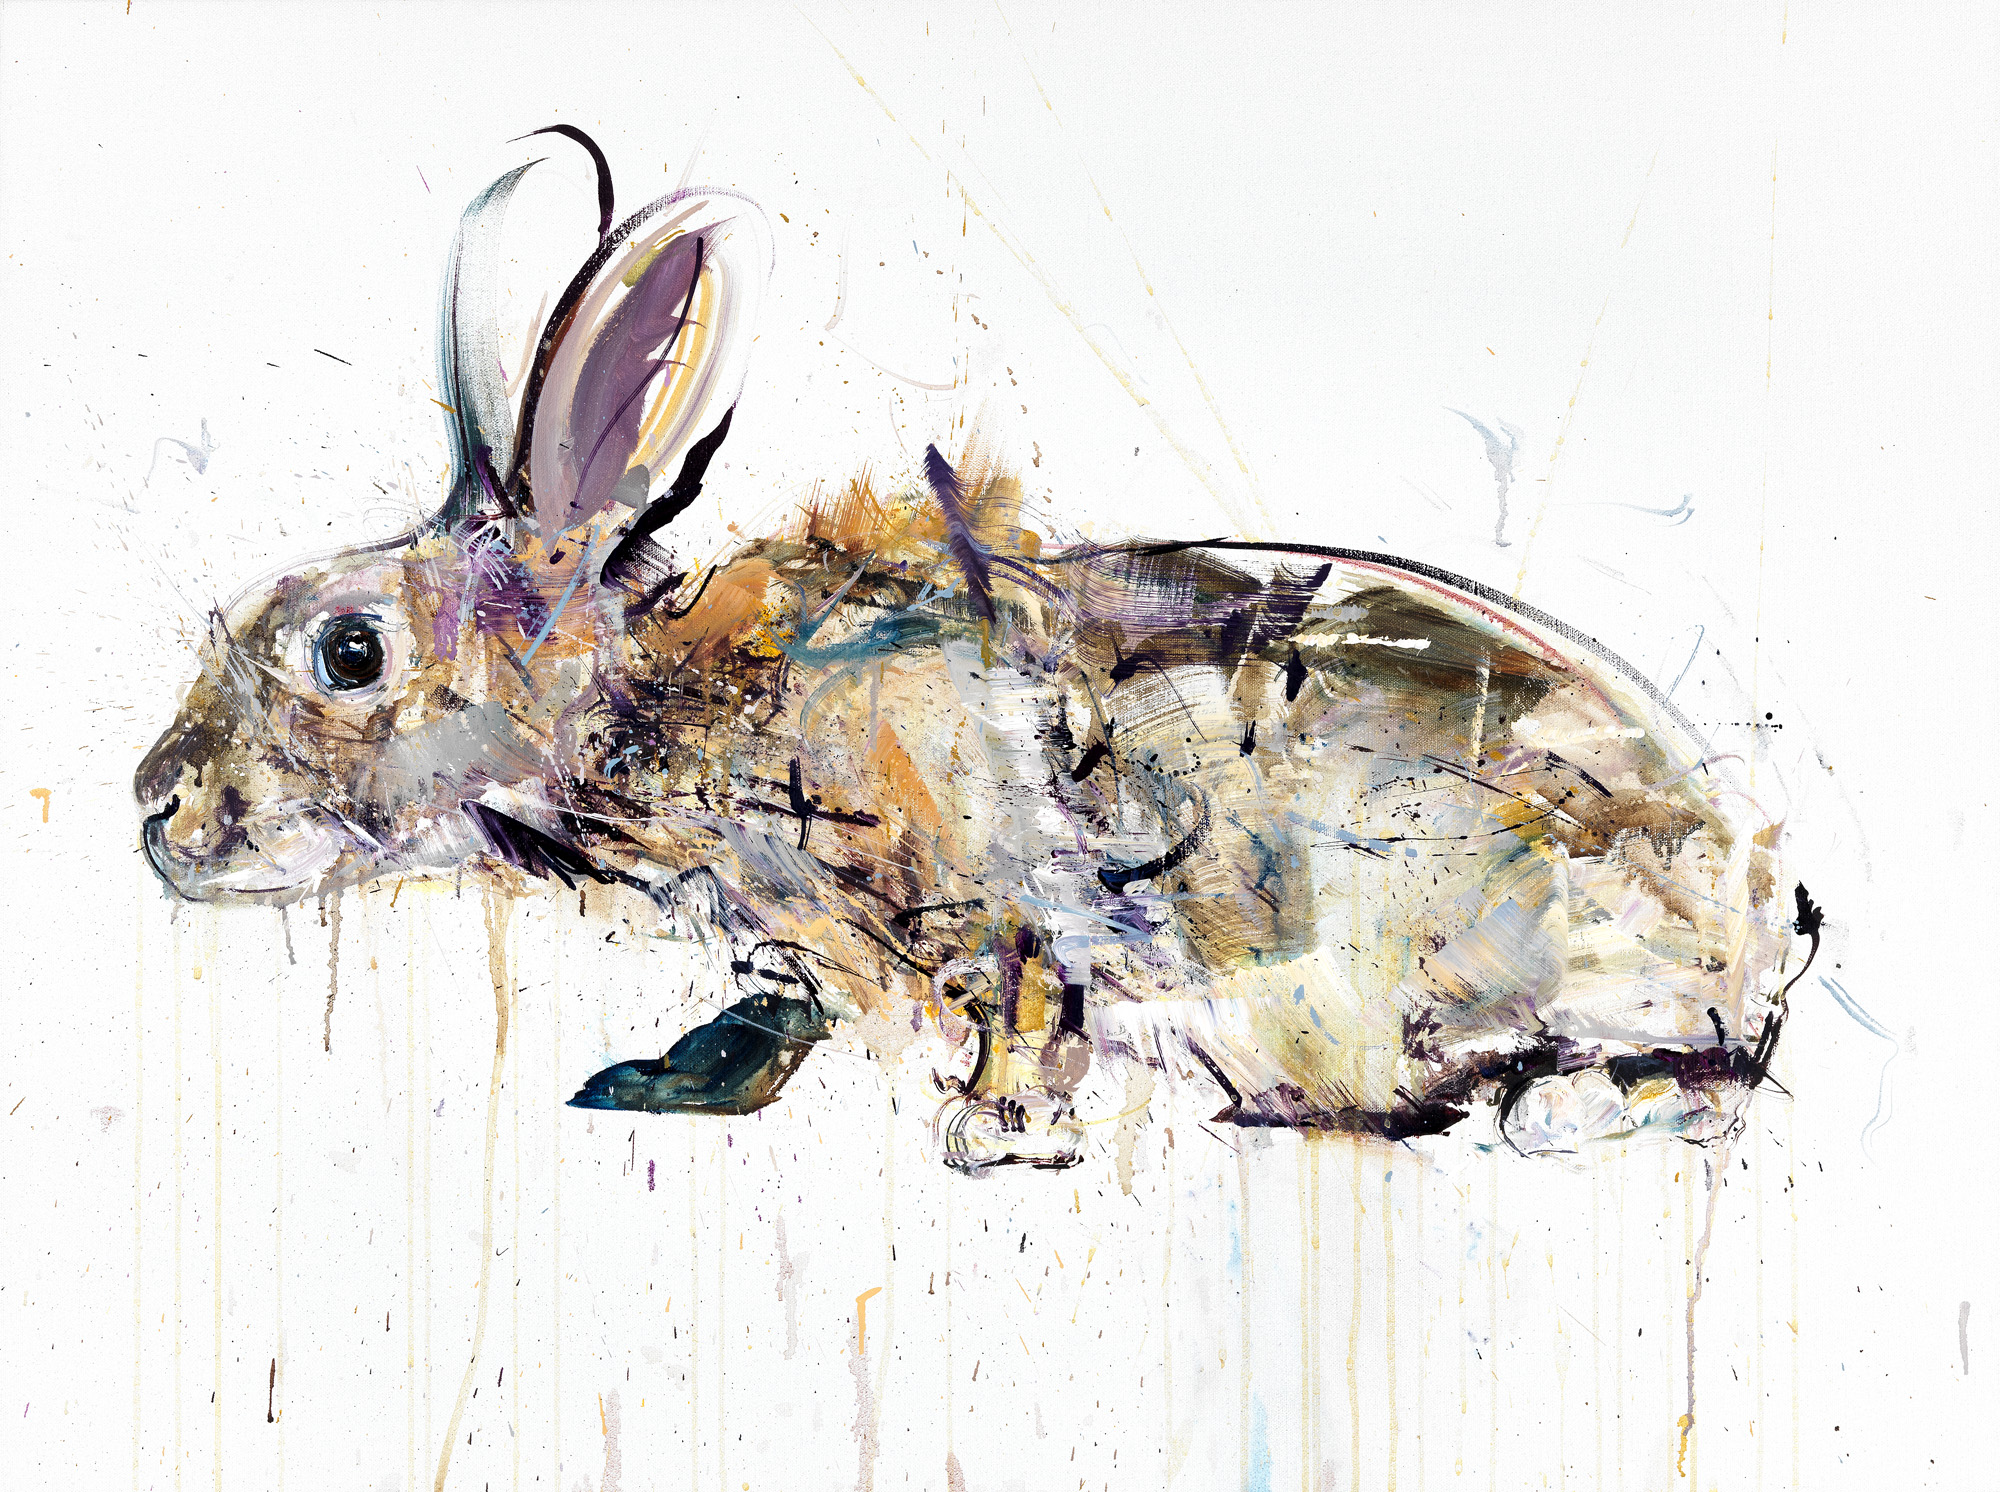 Dave White, Rabbit II